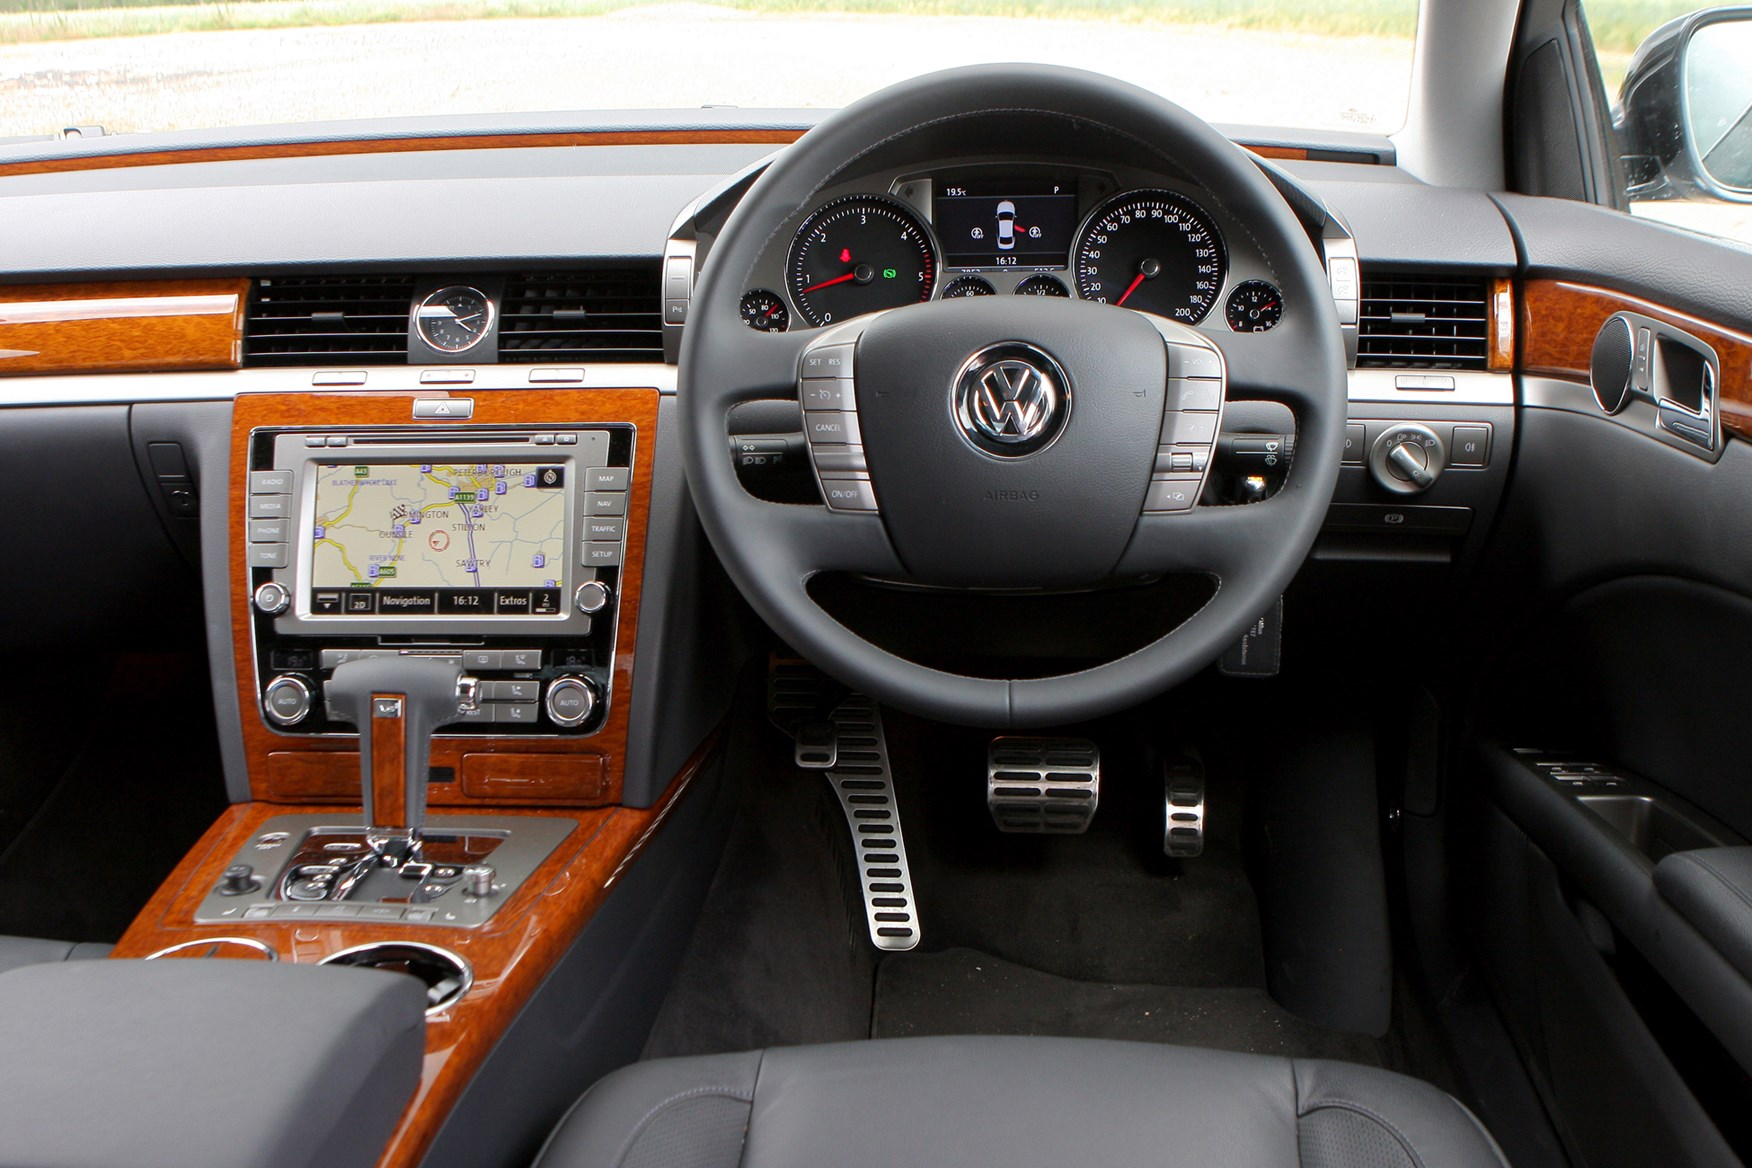 vw phaeton 2015 autos weblog. Black Bedroom Furniture Sets. Home Design Ideas